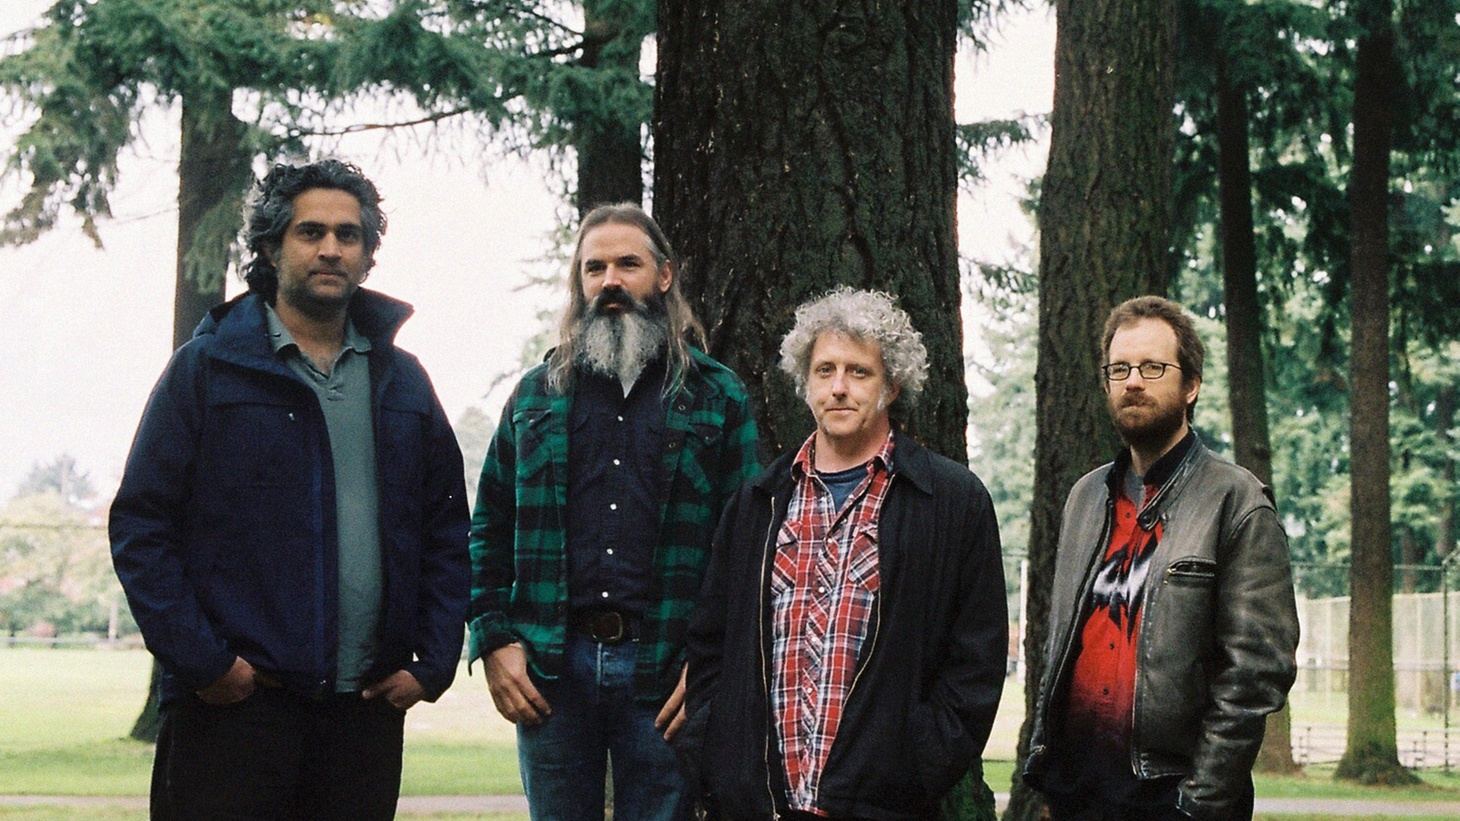 Wooden Shjips left the comforts of their San Francisco home base and anchored in Oregon to record their latest album.